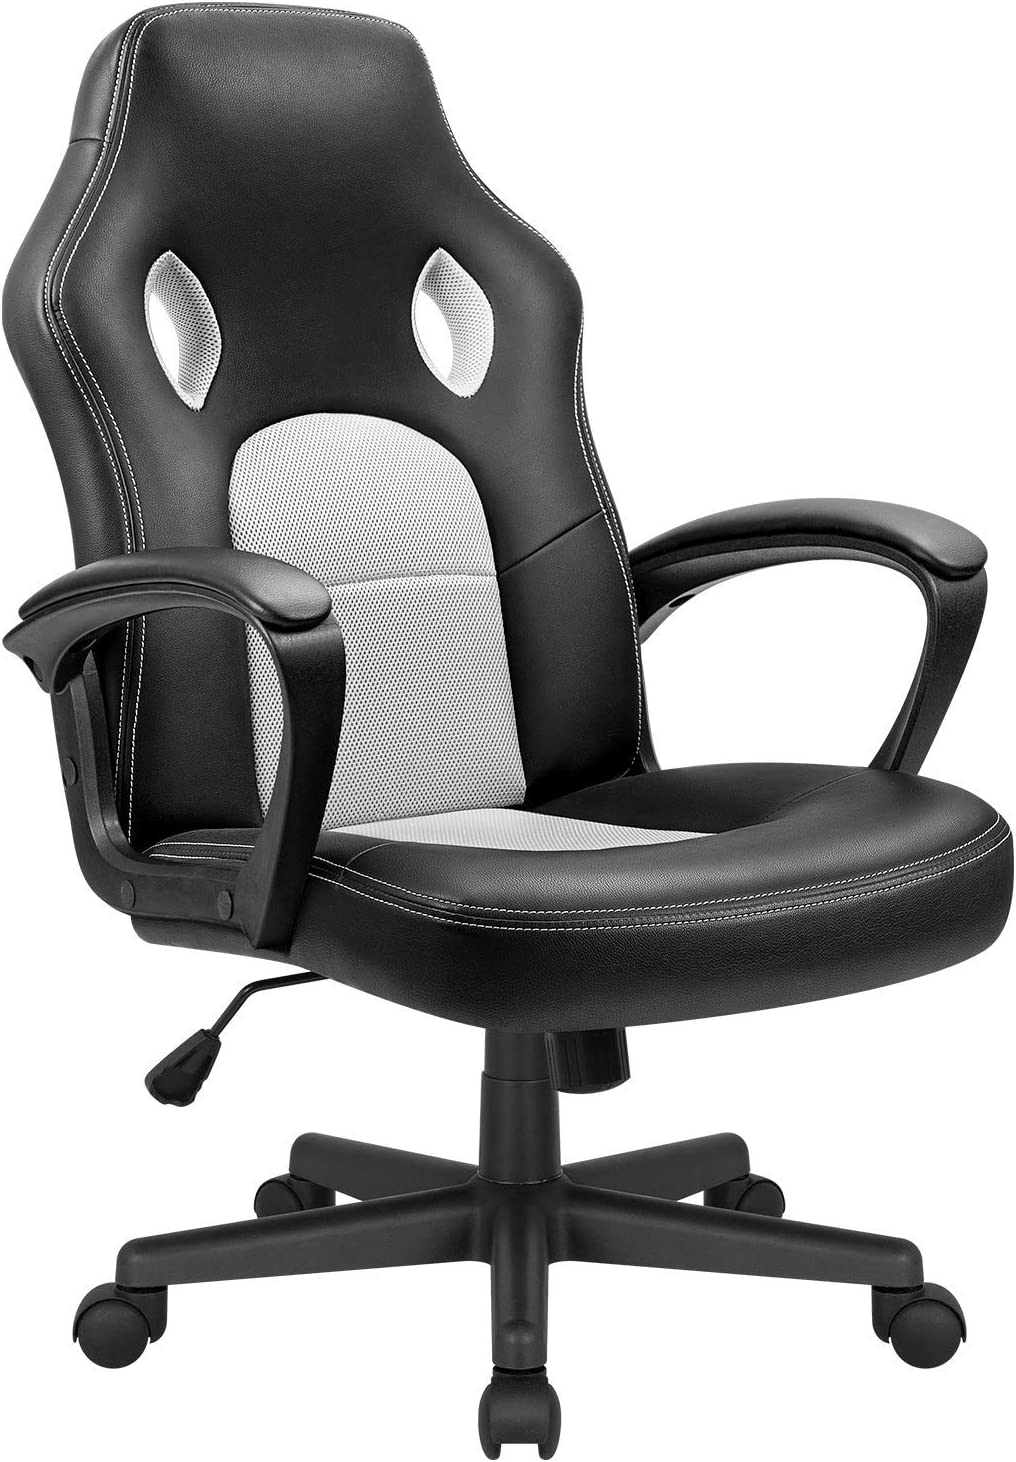 KaiMeng Office Gaming Chair Leather Computer Chair High Back Ergonomic Adjustable Racing Chair Executive Conference Chair (White)